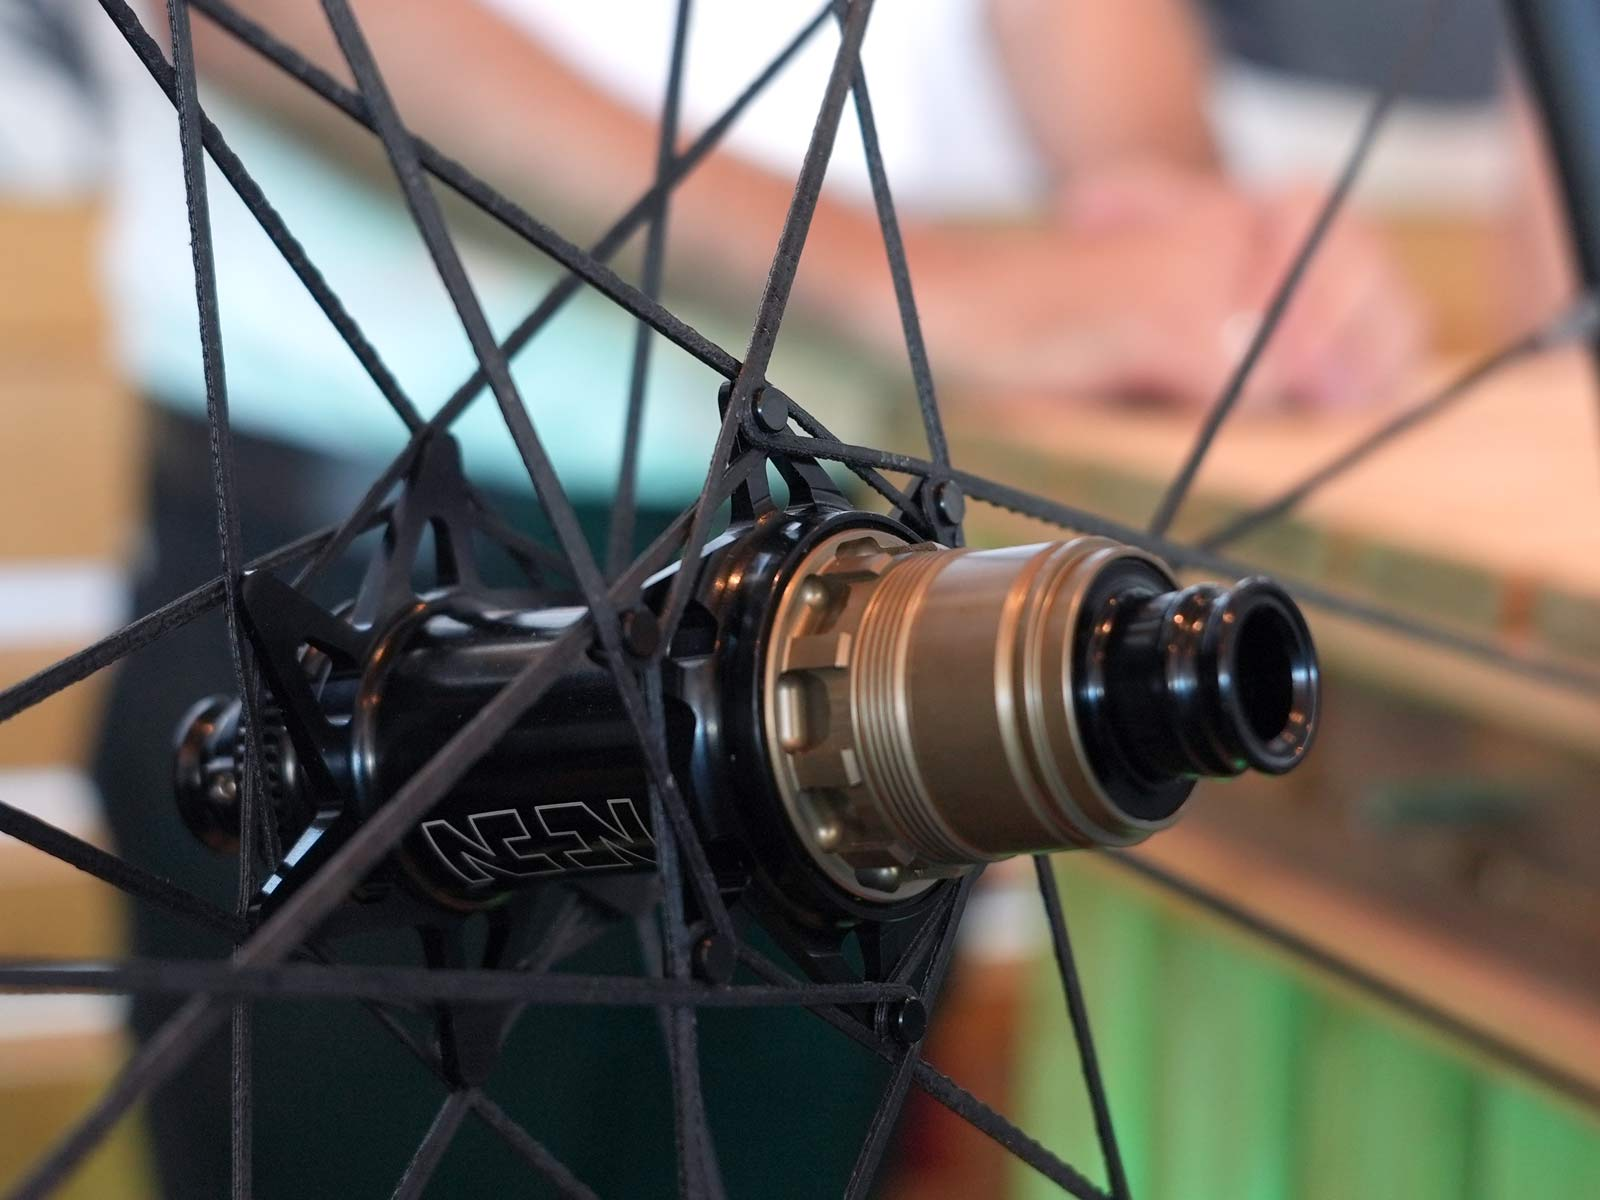 one k wheels bicycle wheels with one-piece carbon fiber spoke sheets closeup details